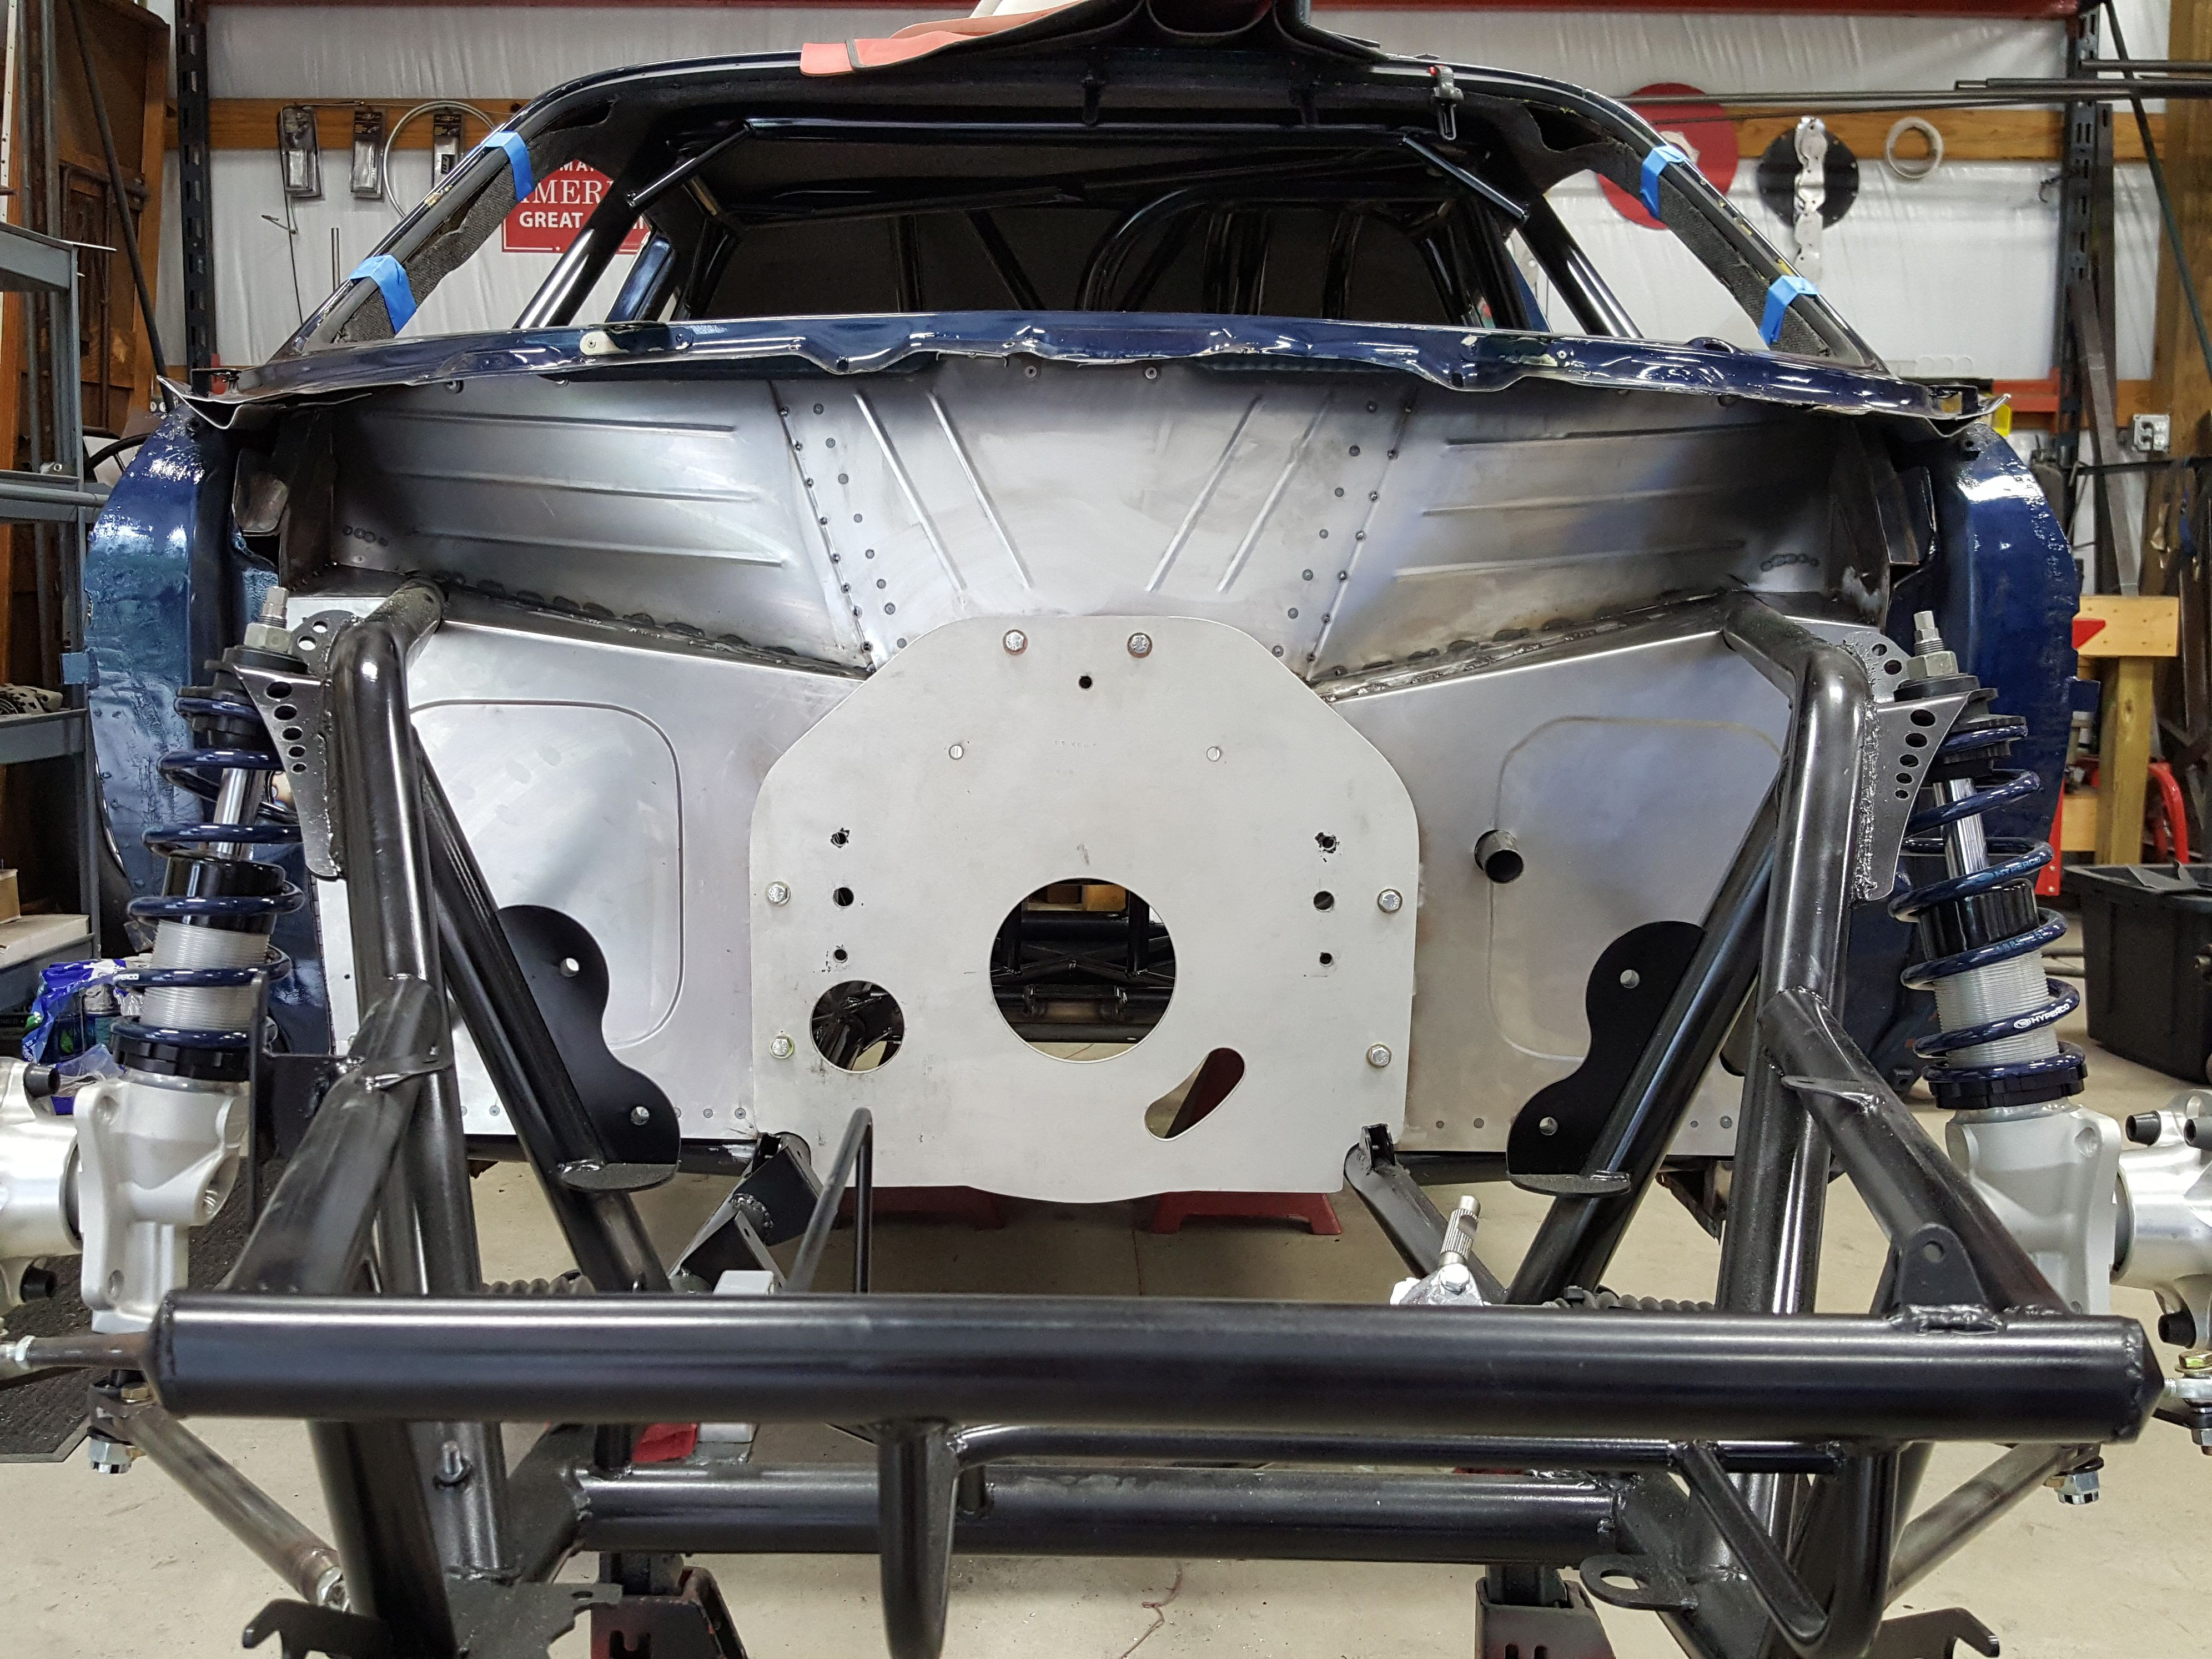 A One Of A Kind Piece Of Artwork Chassis Fabrication Drag Racing Tube Chassis